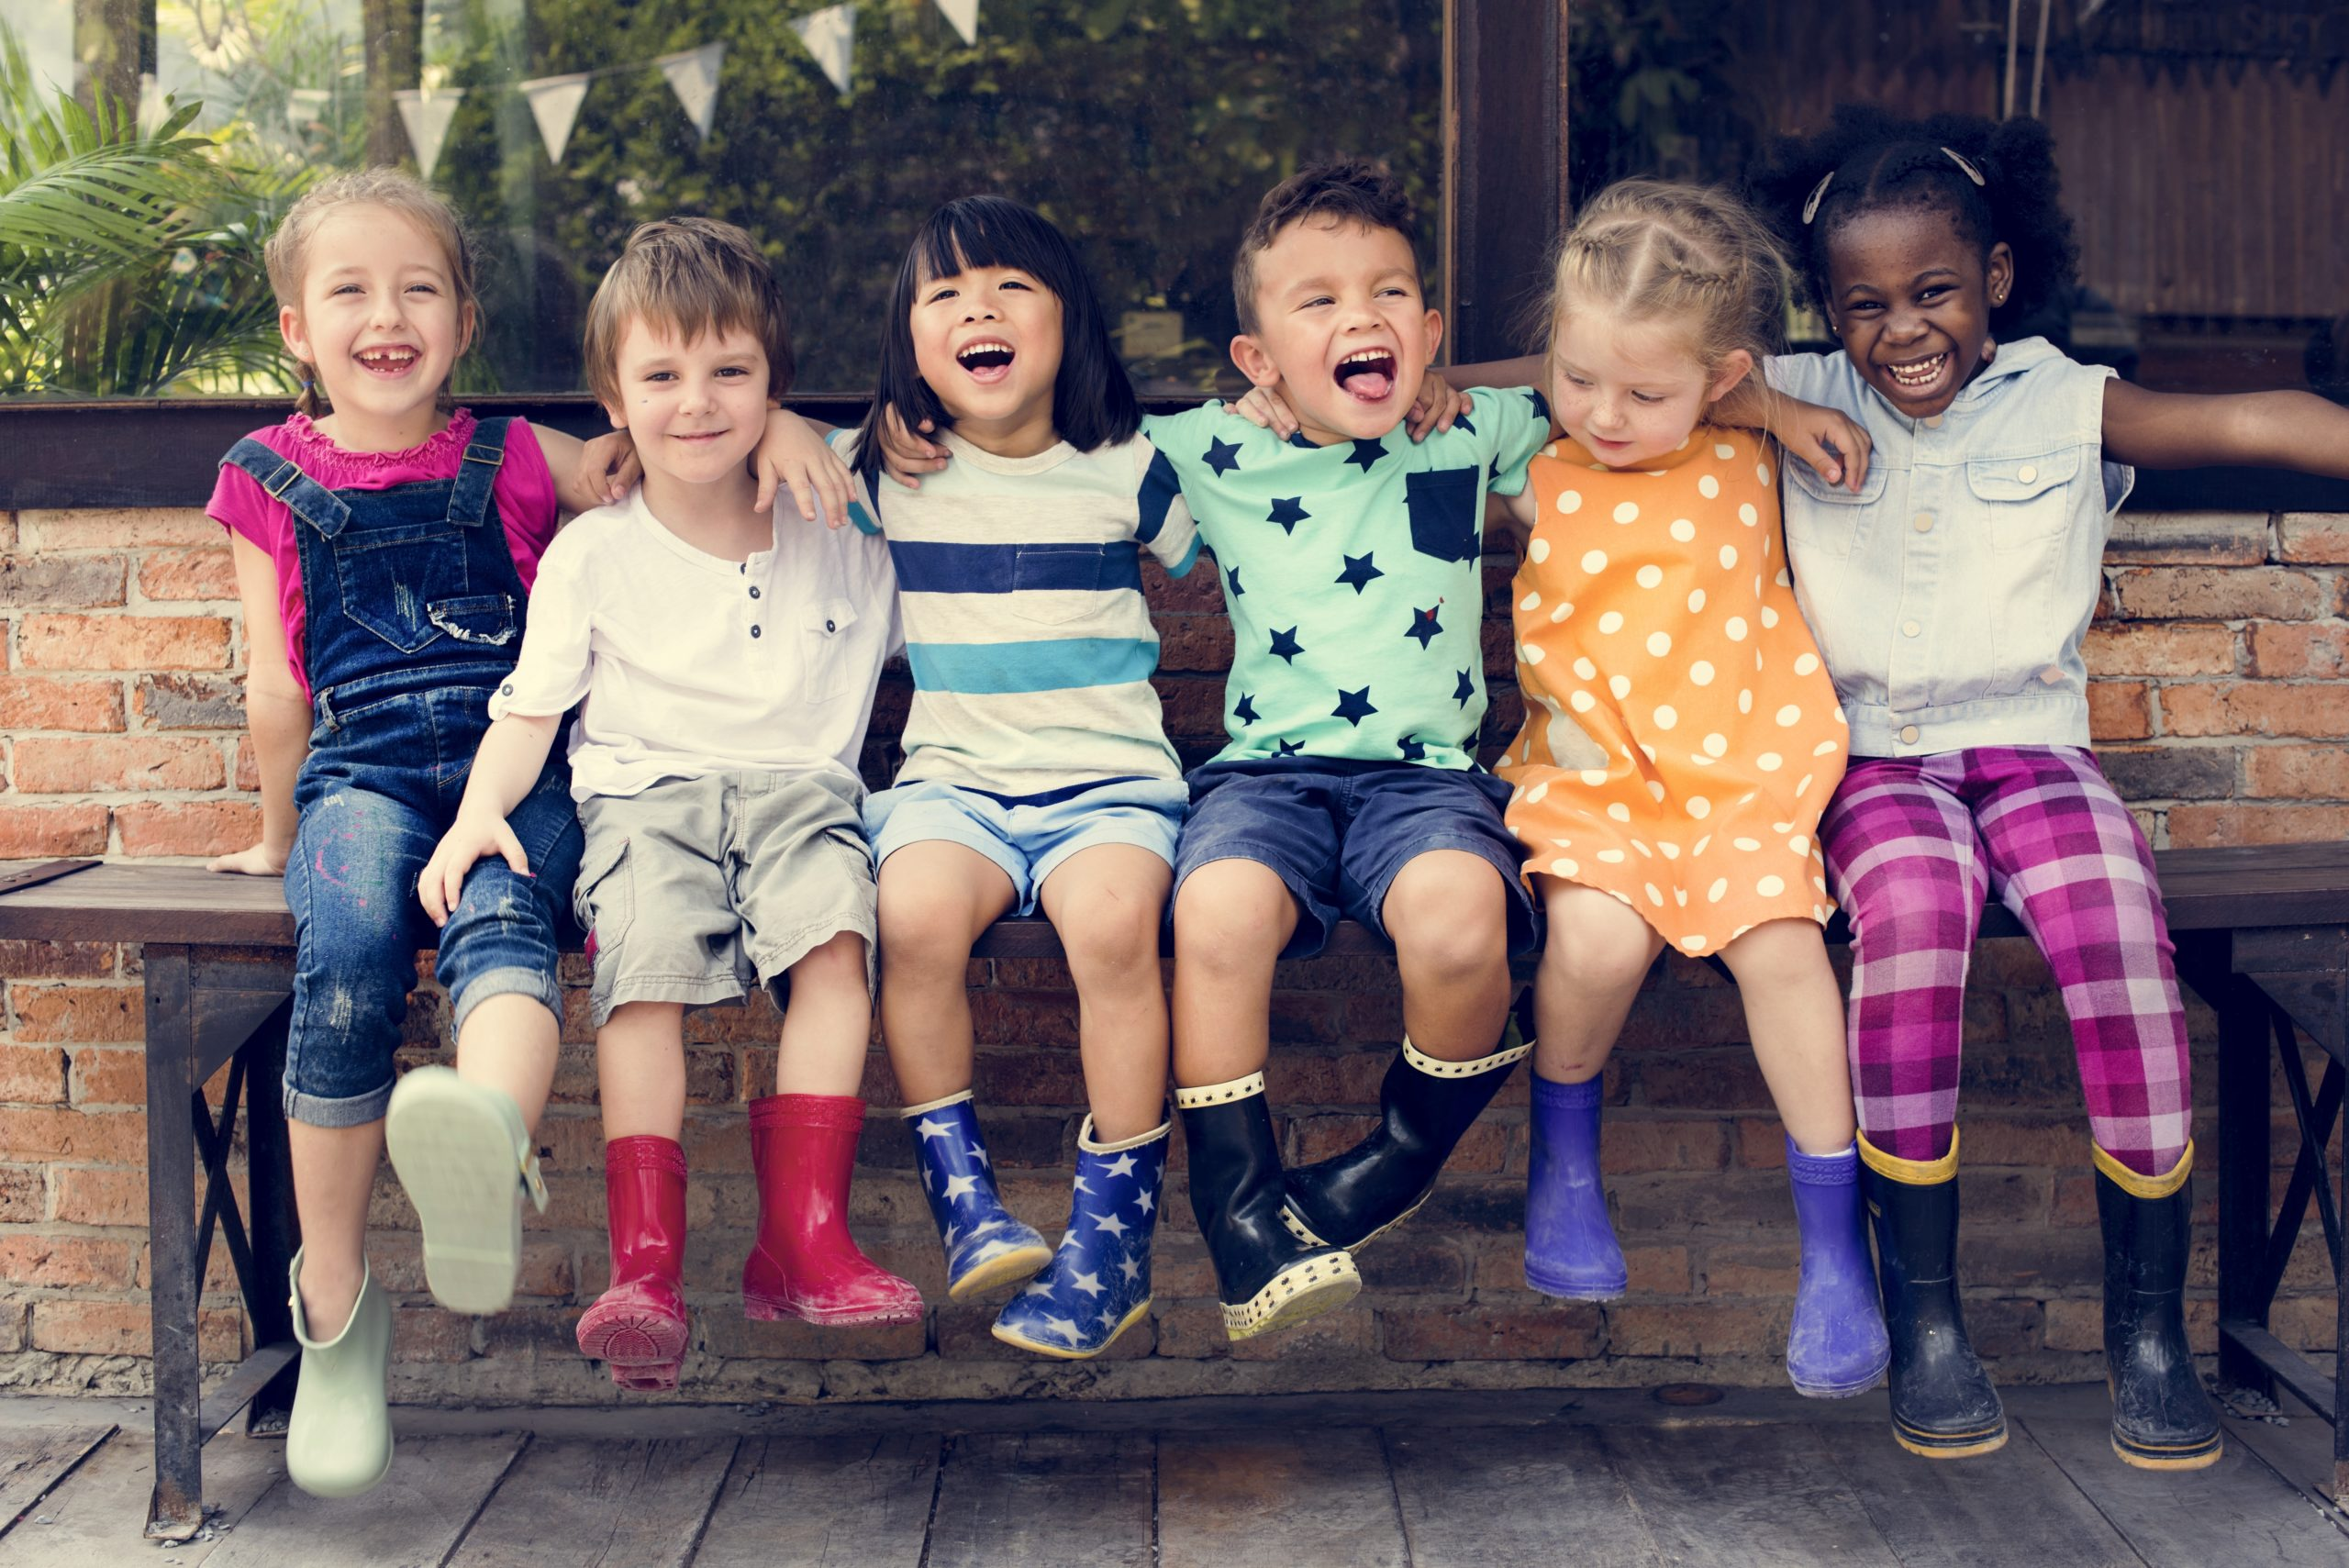 Health Care Factors Associated with Developmental Disorders in Early Childhood